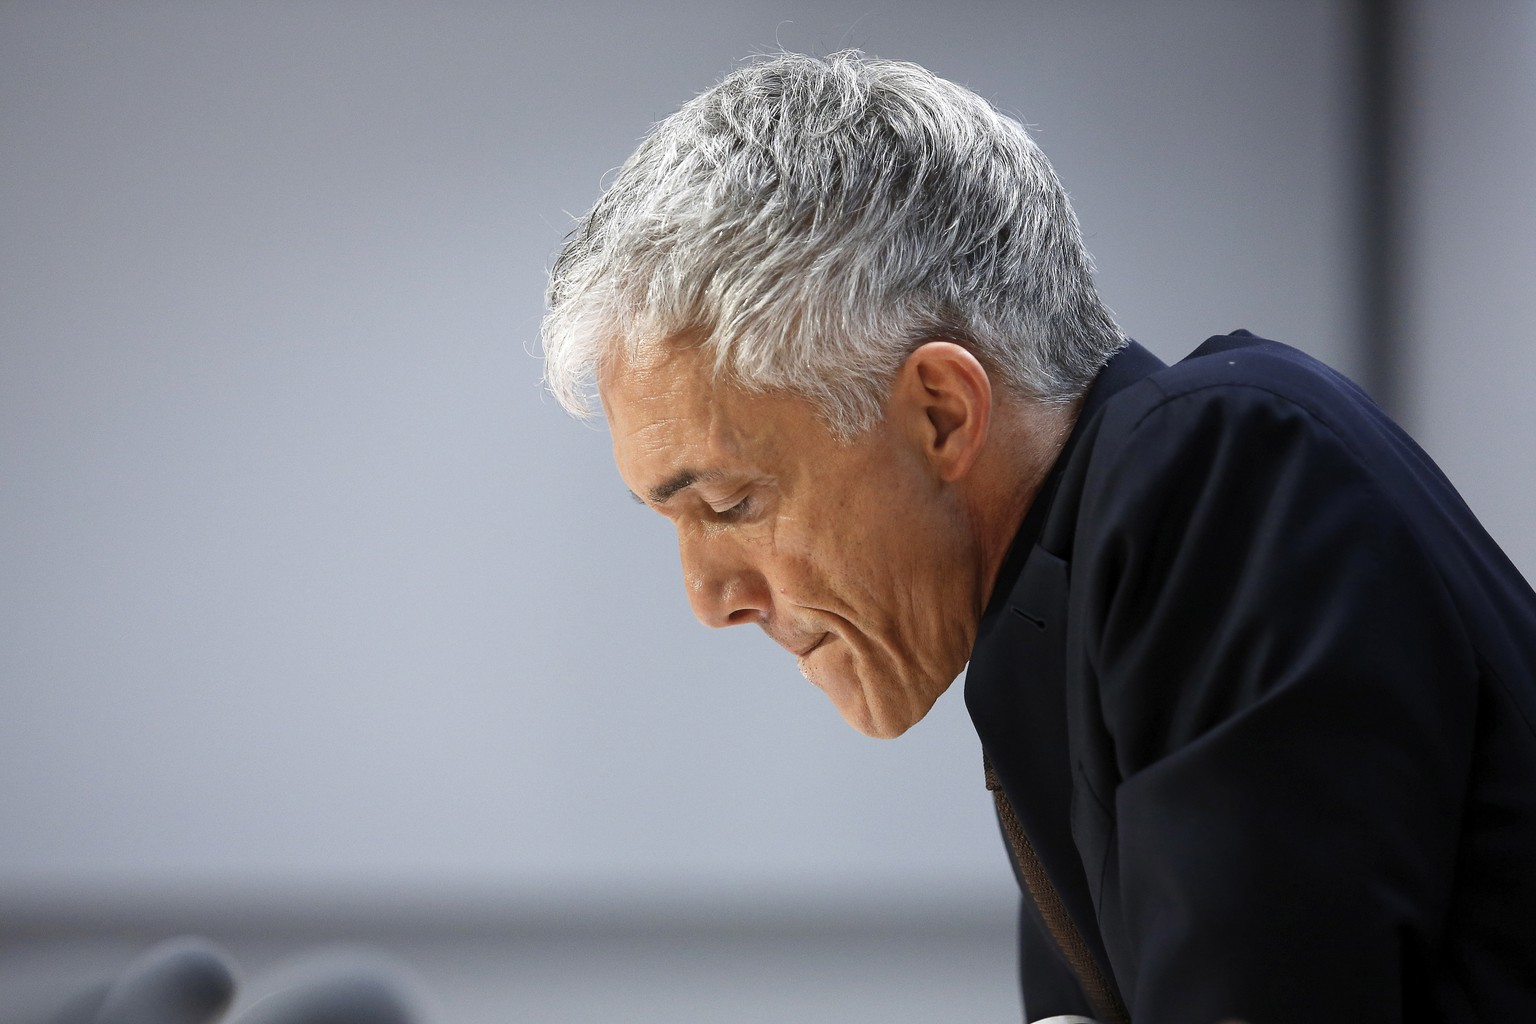 epa07561031 Swiss Federal Attorney Michael Lauber attends a press conference at the Media Centre of the Federal Parliament in Bern, Switzerland, 10 May 2019. Federal Attorney Michael Lauber is criticised for informal meetings with FIFA head Gianni Infantino. The supervisory authority for the Federal Prosecutor's Office is opening a disciplinary investigation against Lauber.  EPA/PETER KLAUNZER